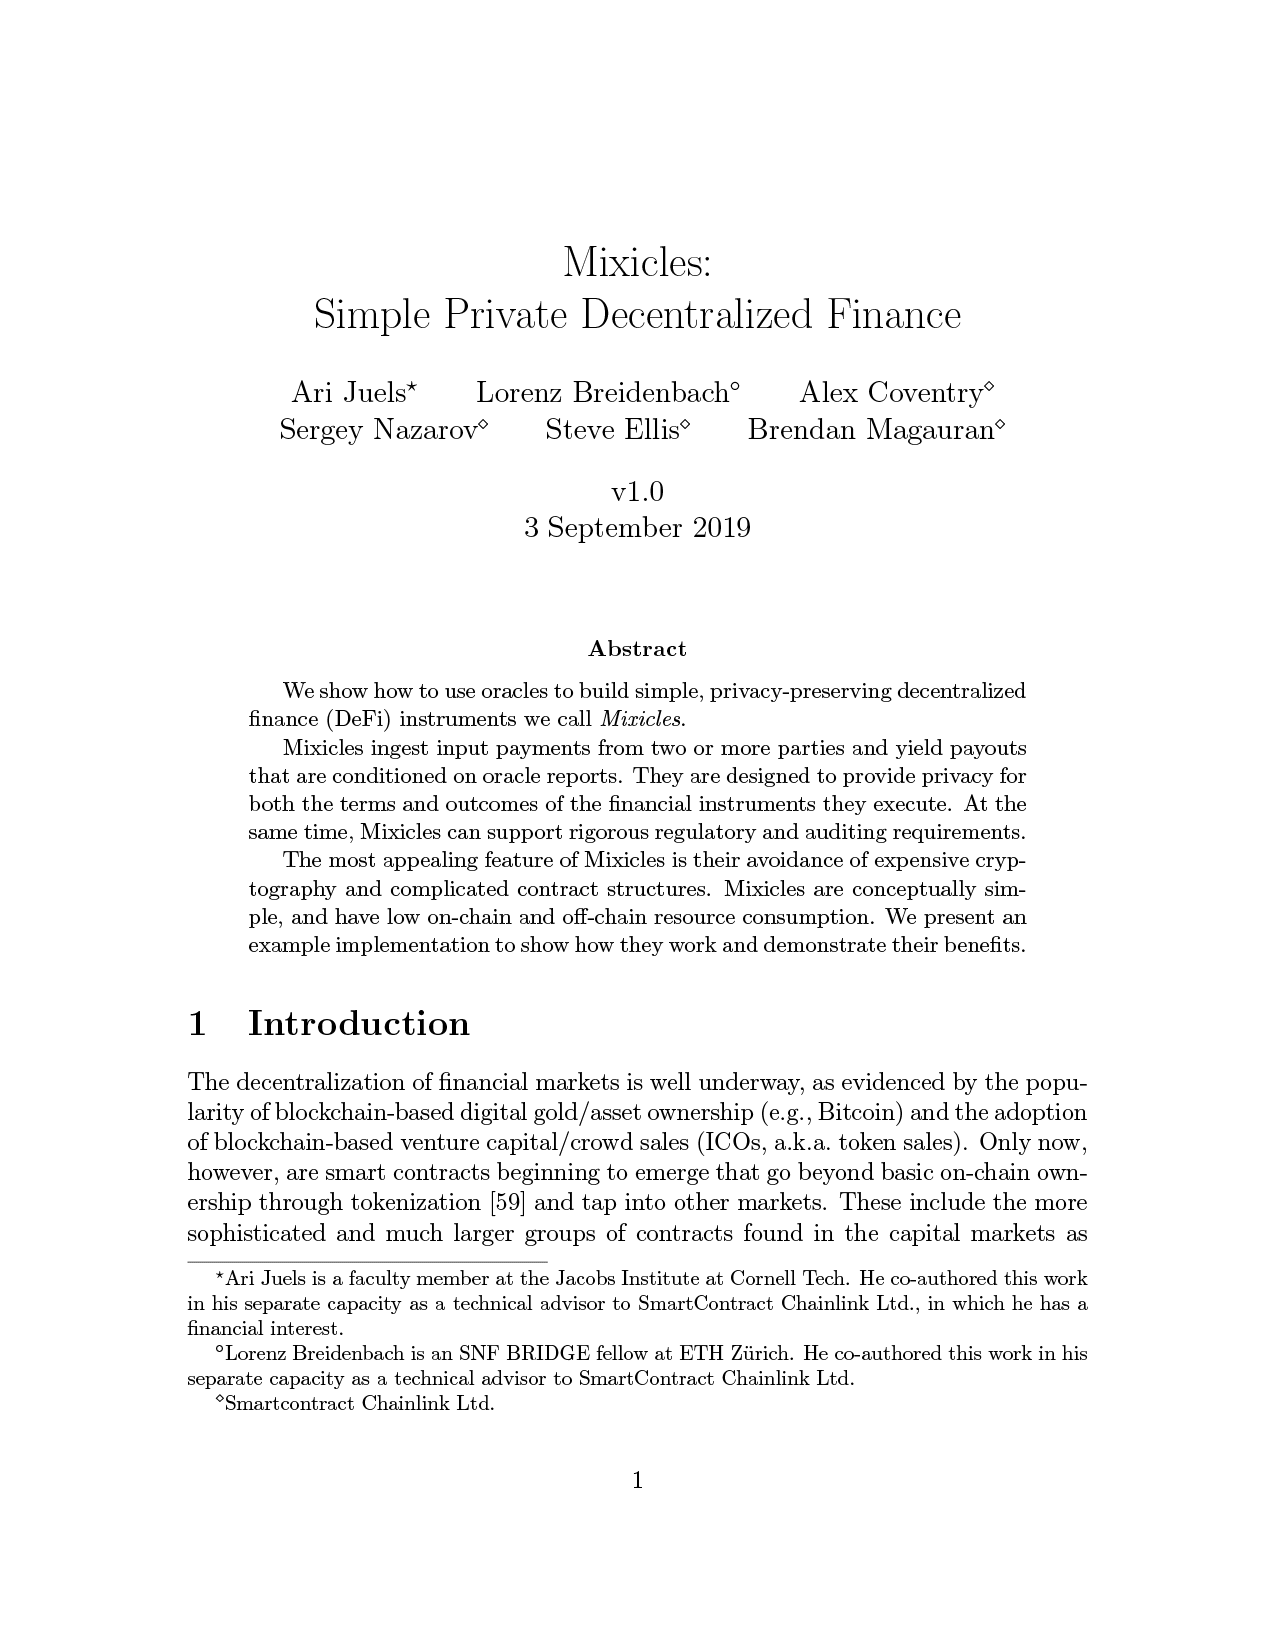 Mixicles Whitepaper cover